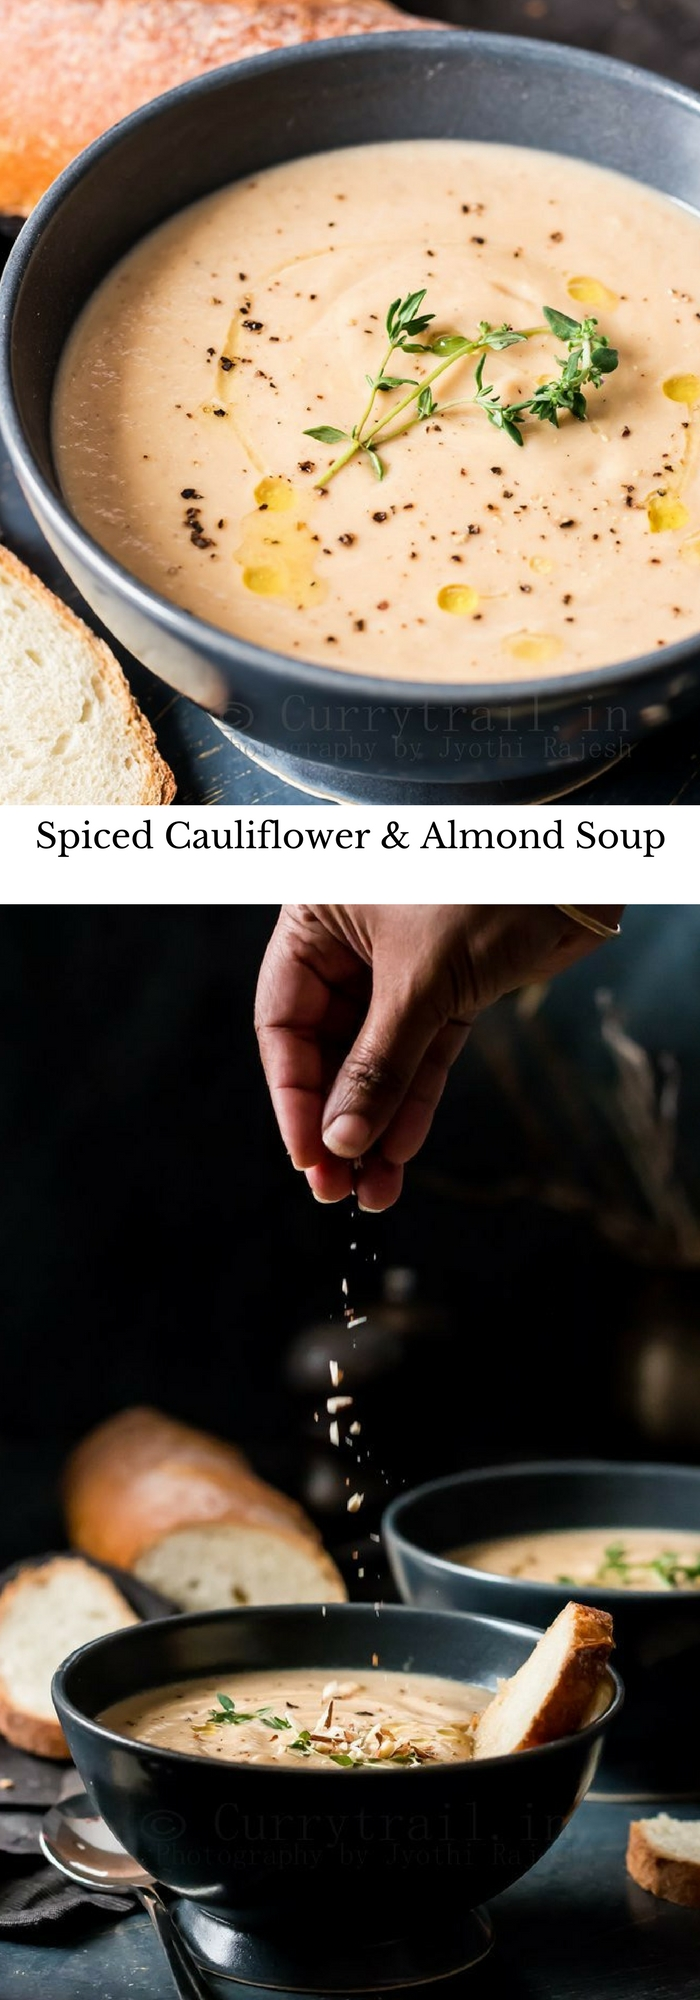 Spiced Cauliflower & Almond Soup